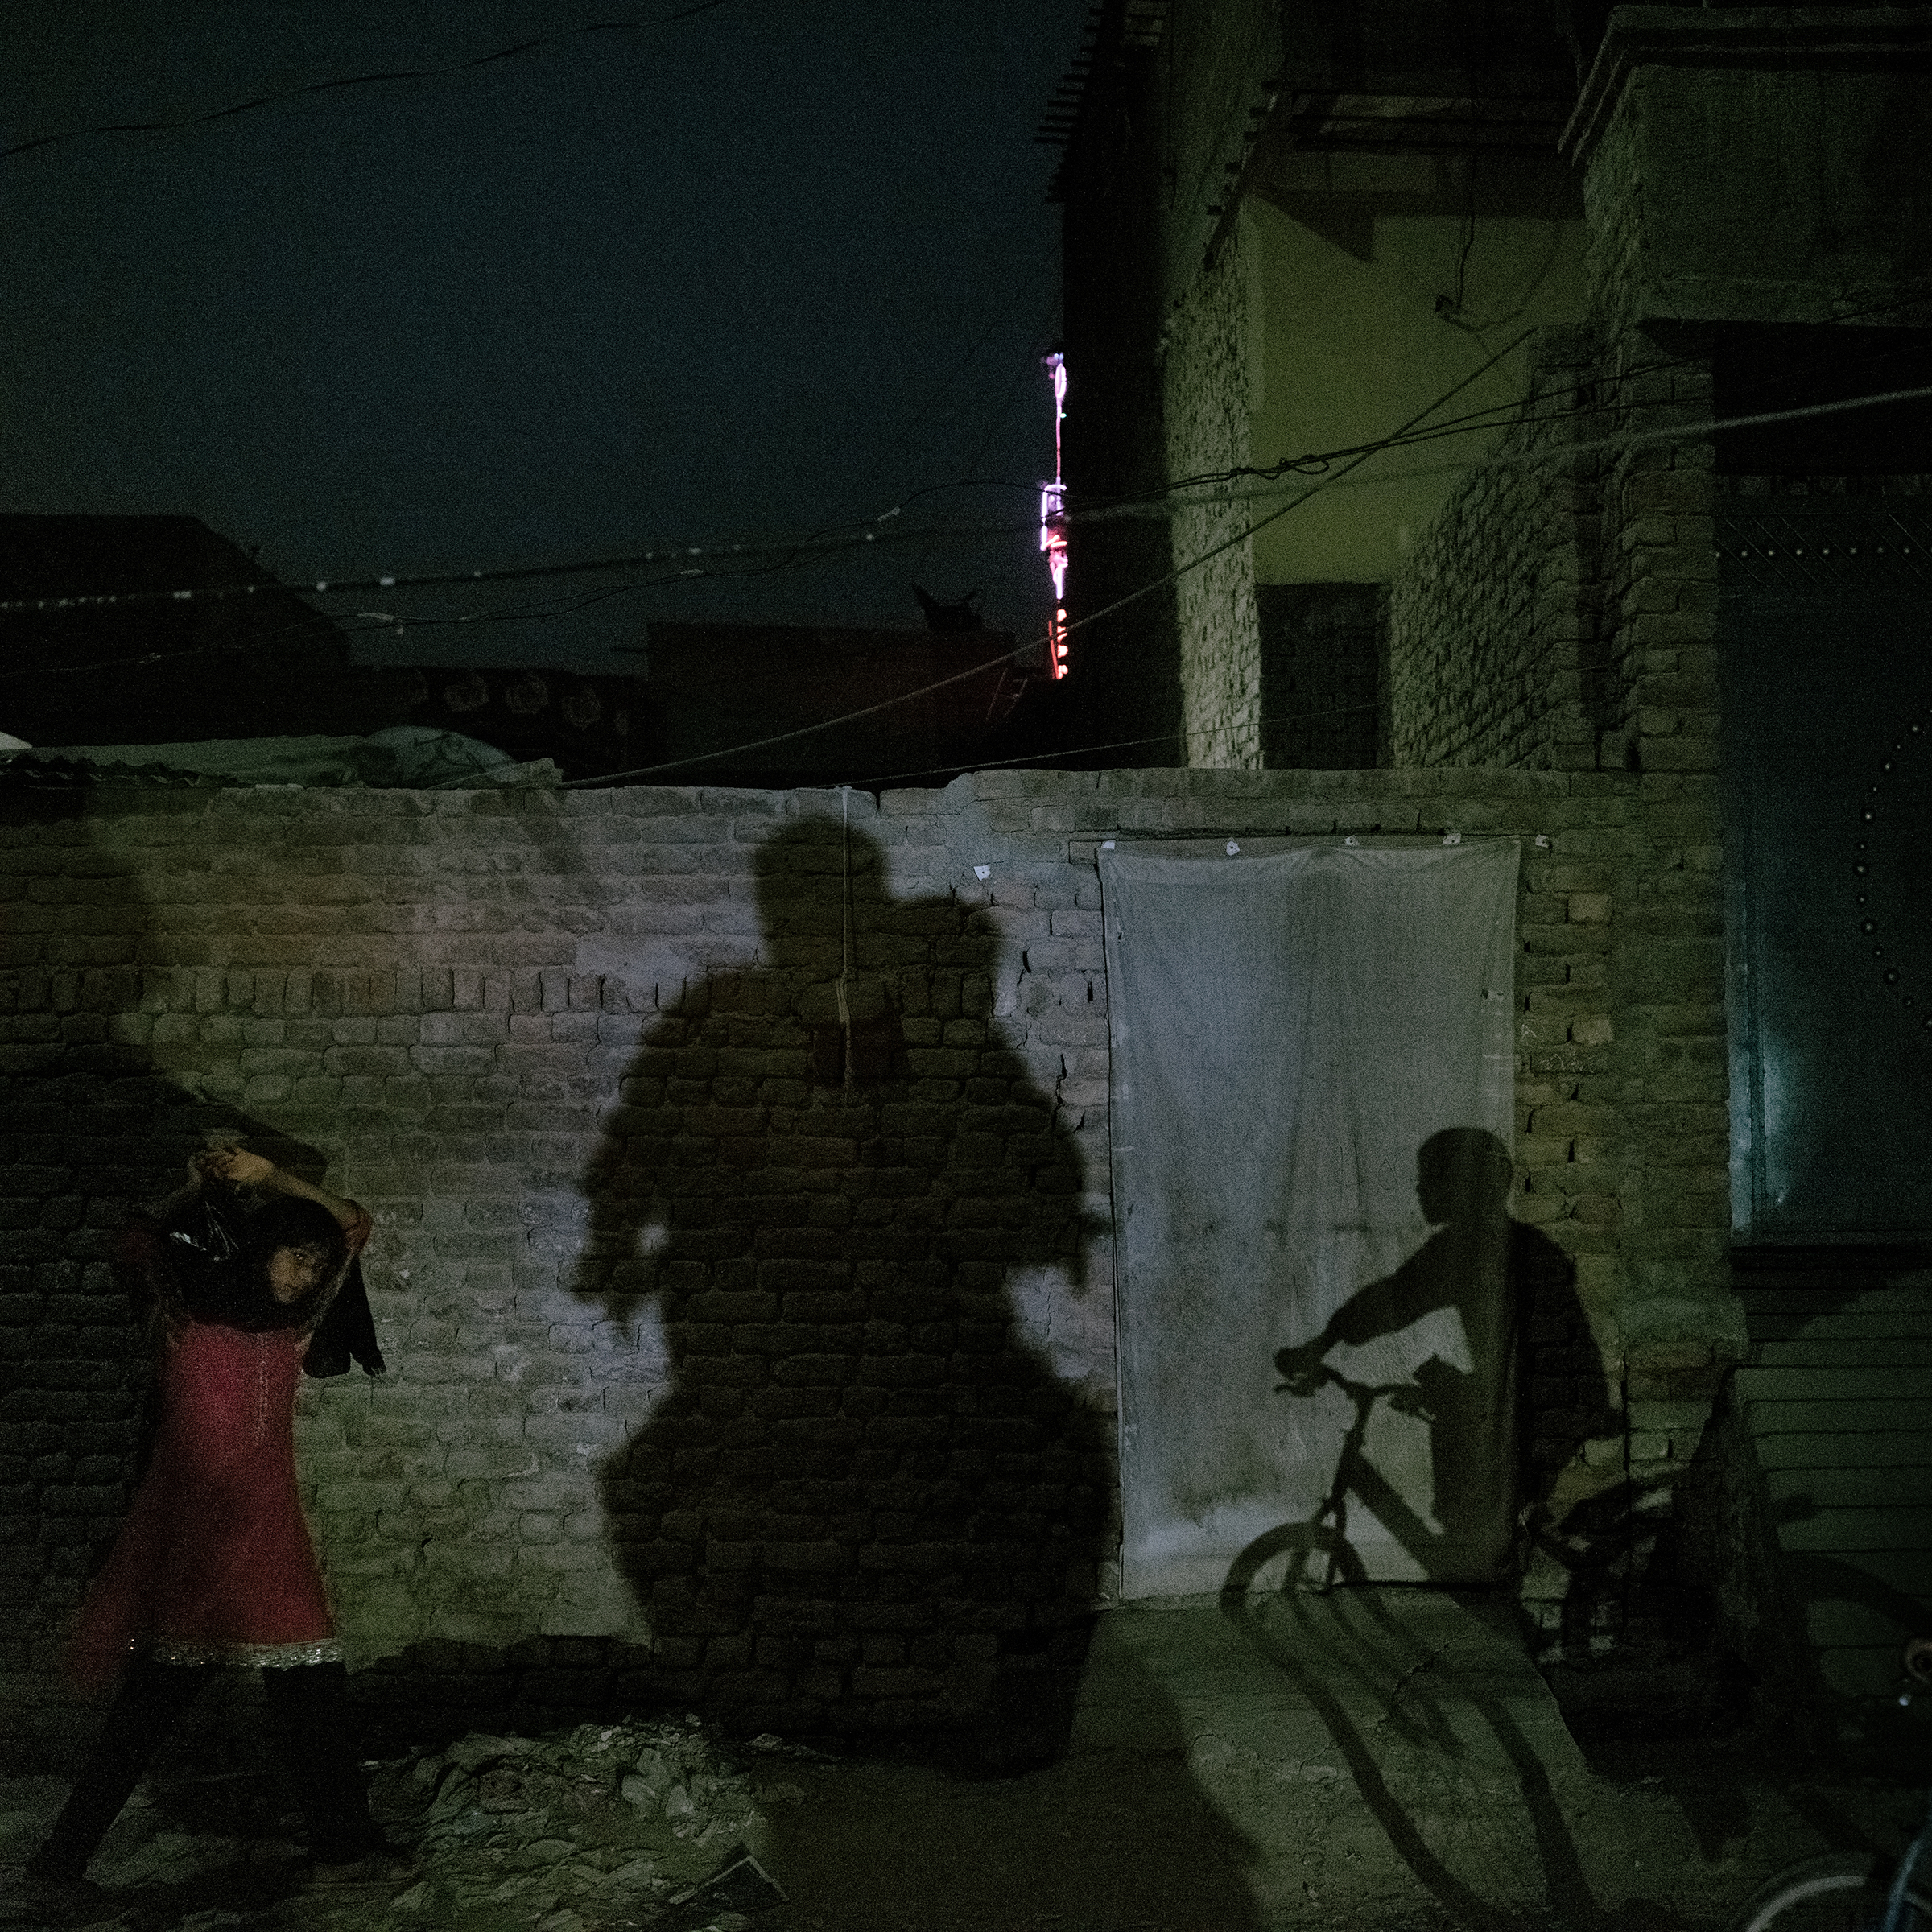 A range of activities happen at night in Jacobabad on June 27: a girl returns home with groceries; a boy rides a bicycle; and a father and son ride home on a motorcycle. Sept. 23 issue.